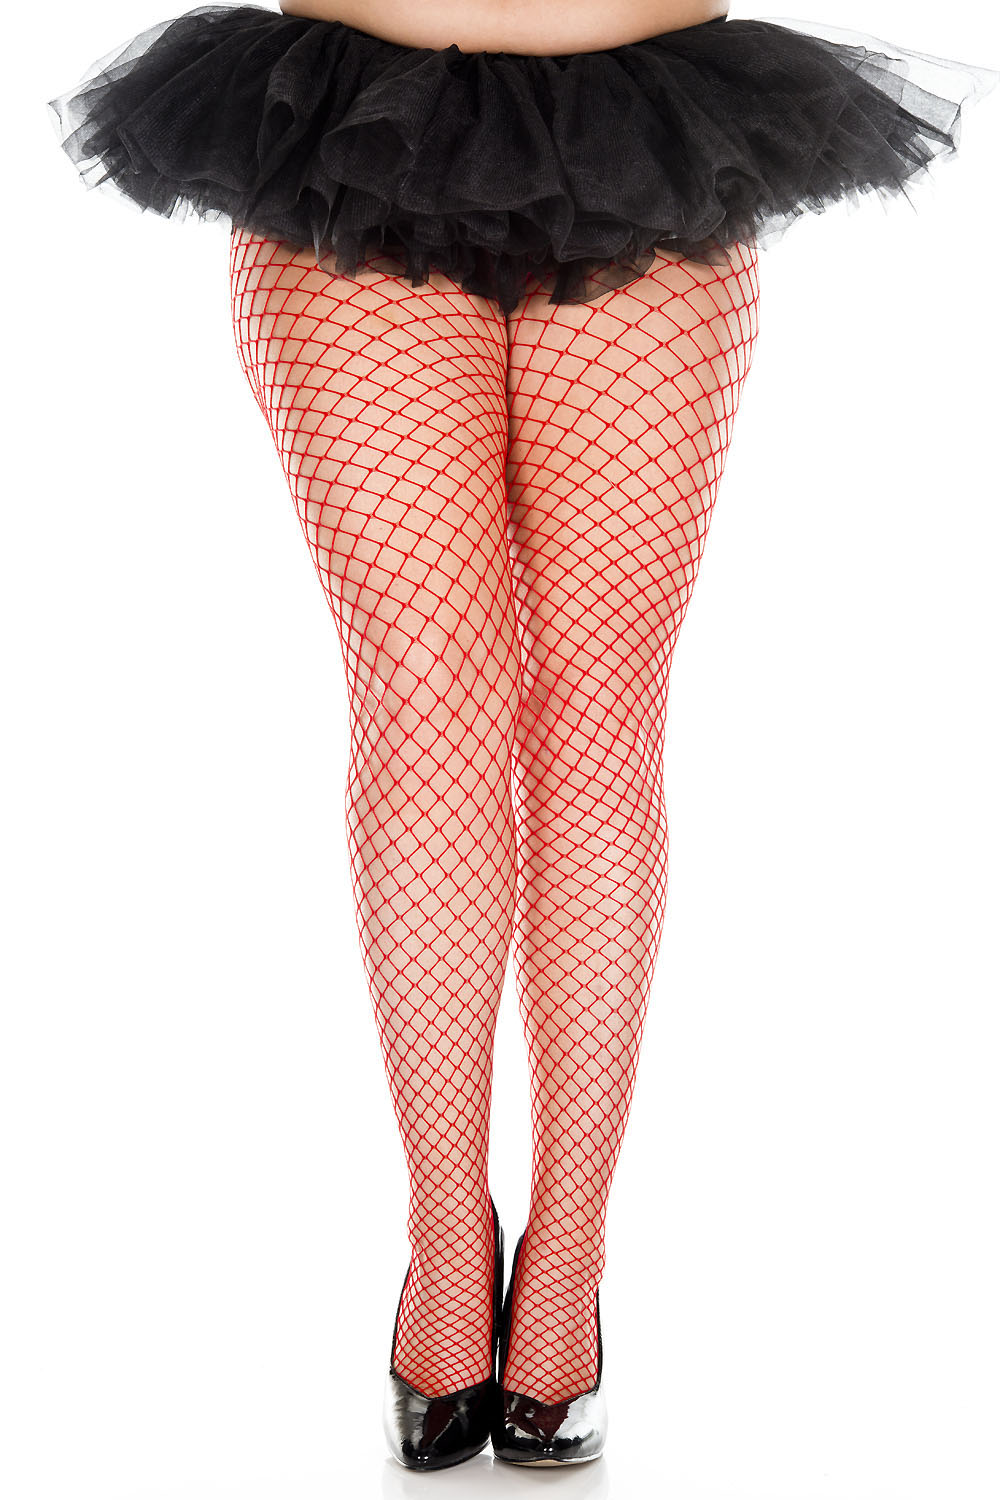 Mini Diamond Net Spandex Pantyhose - Queen Size - Red